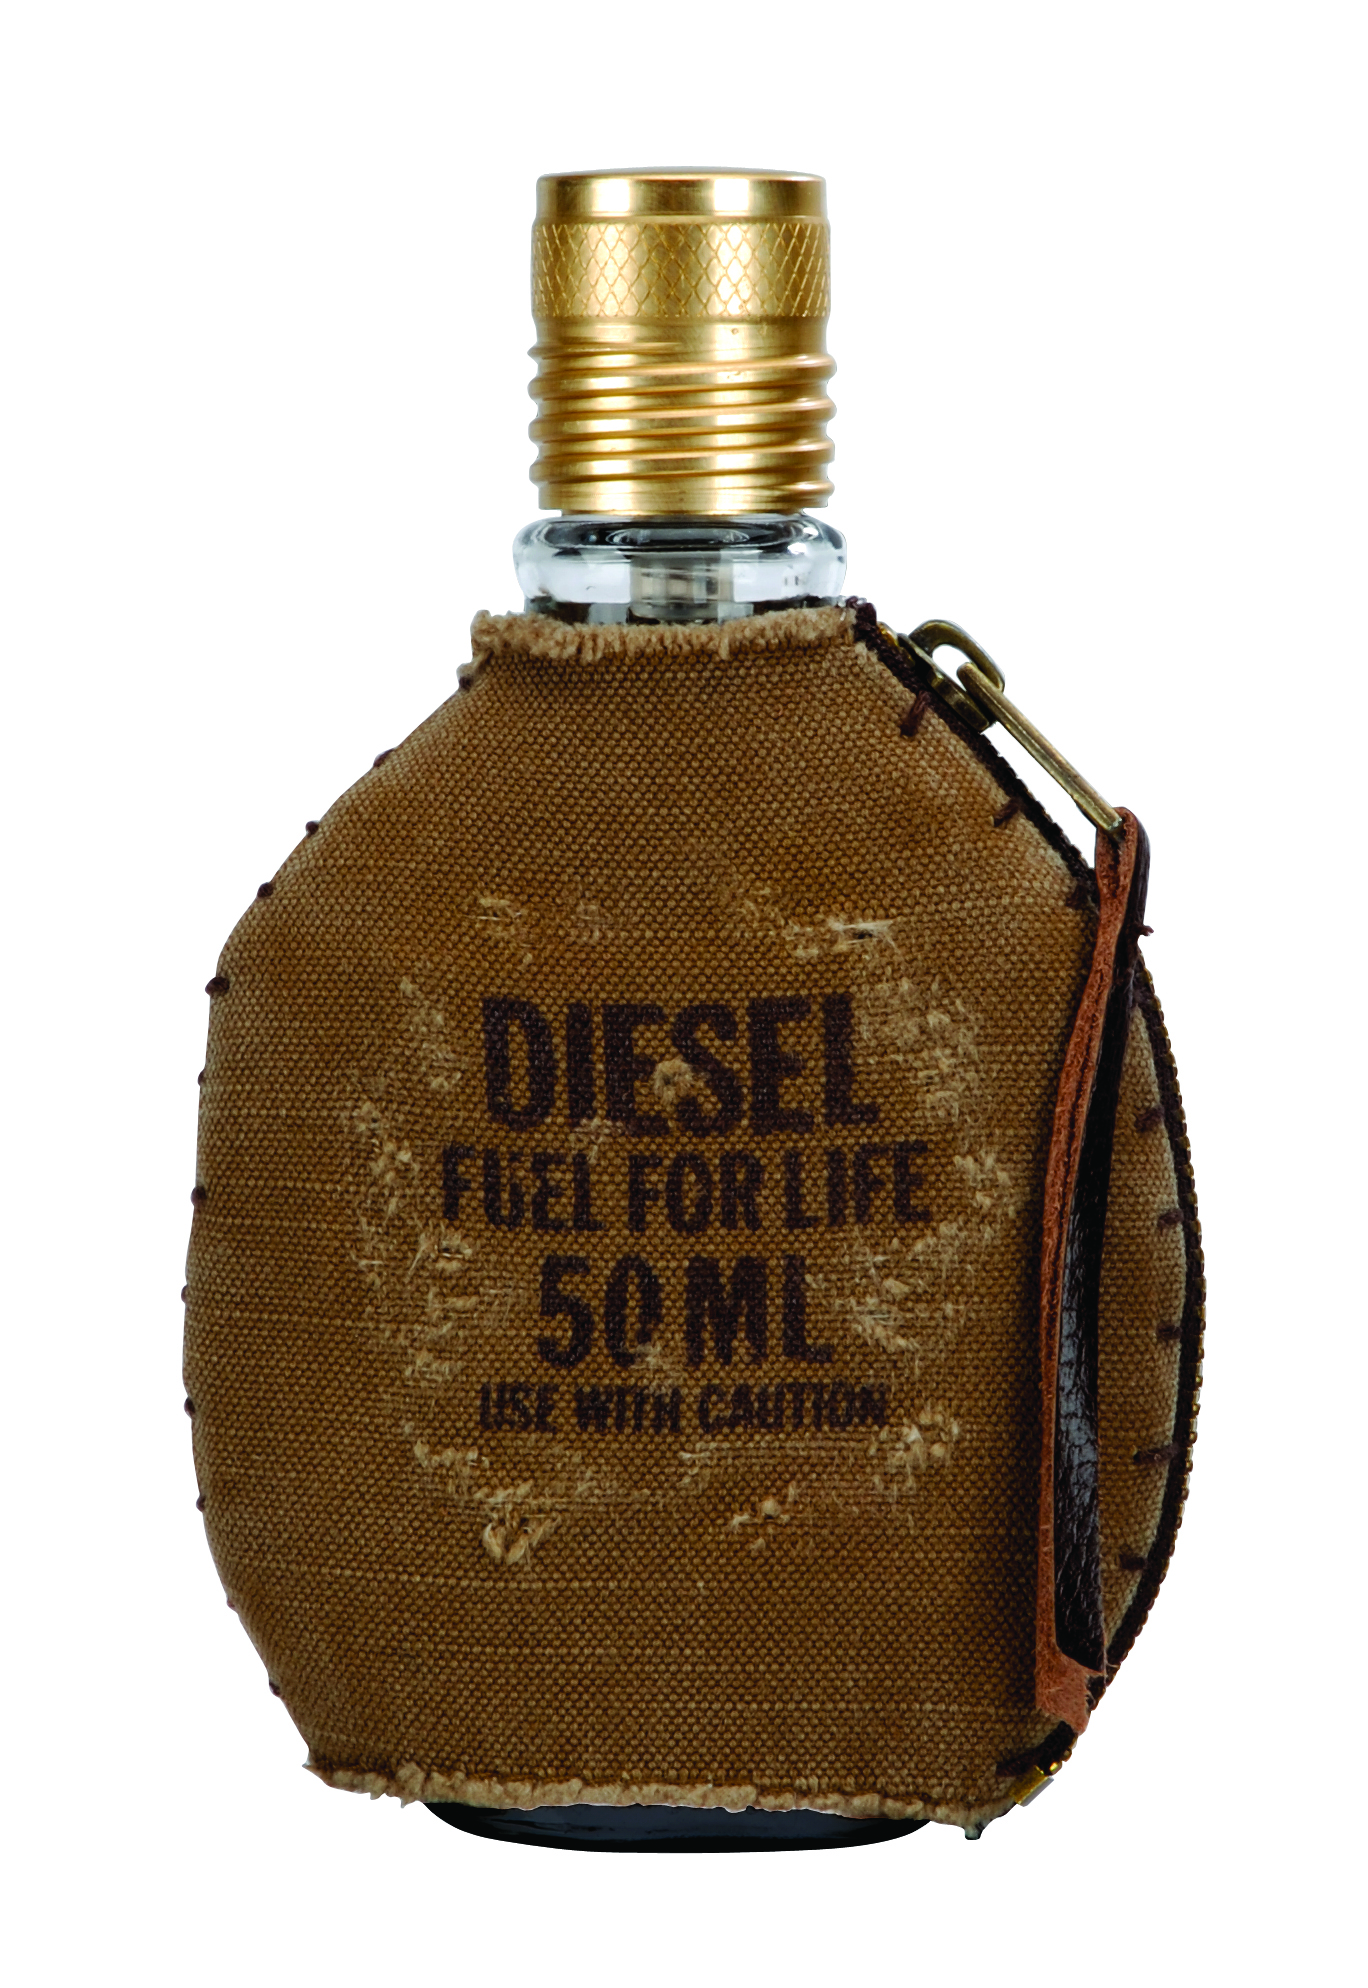 Diesel Fuel For Life He EDT, 50 ml